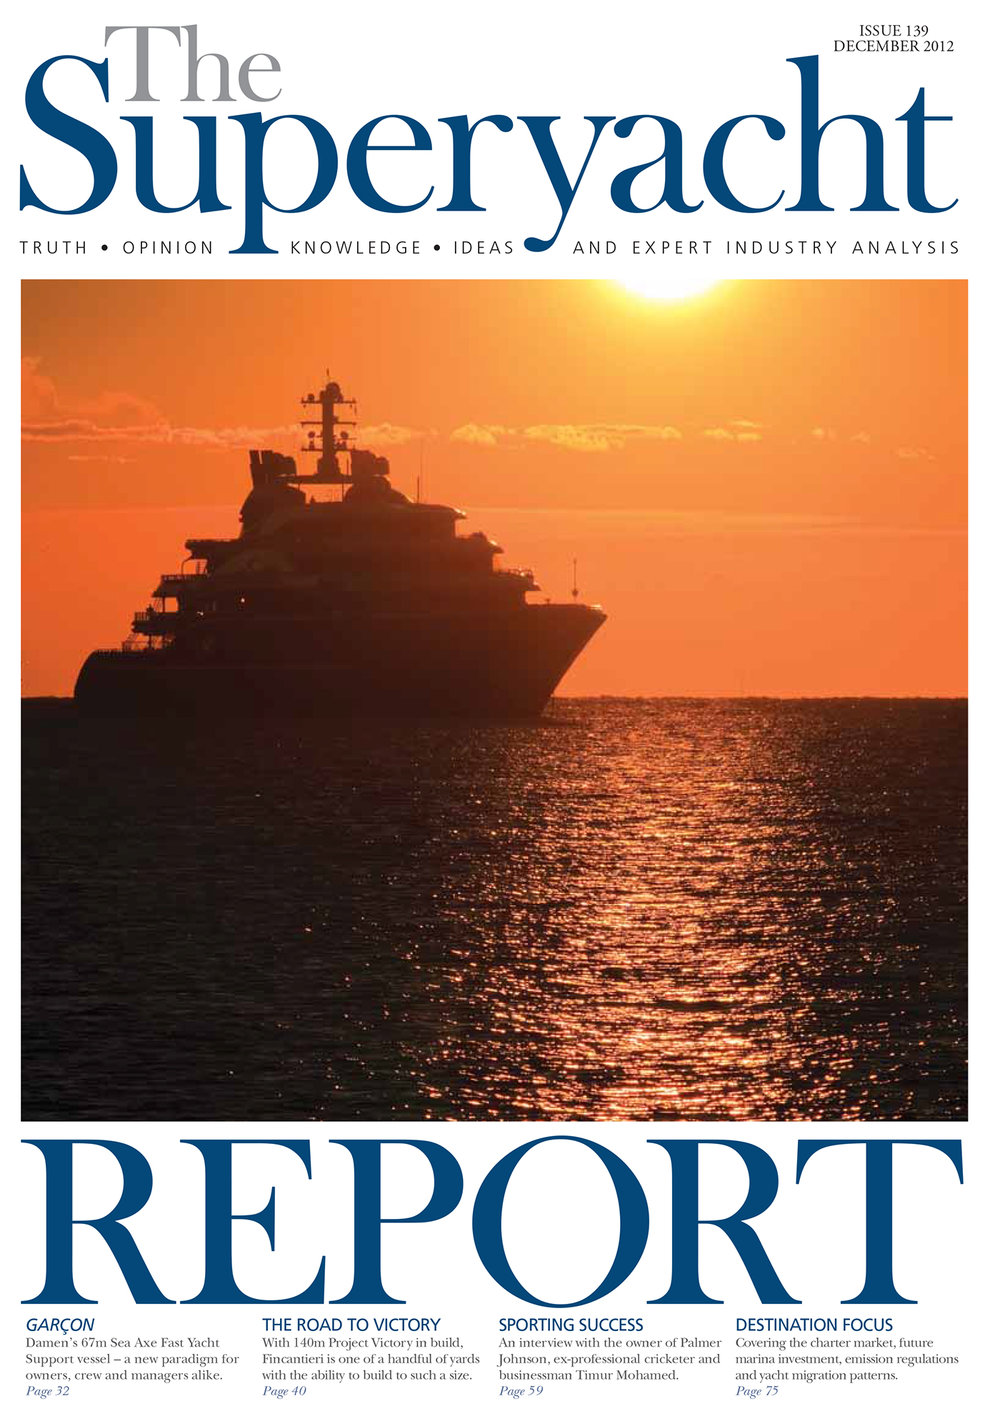 PJ The Superyacht Cover.jpg